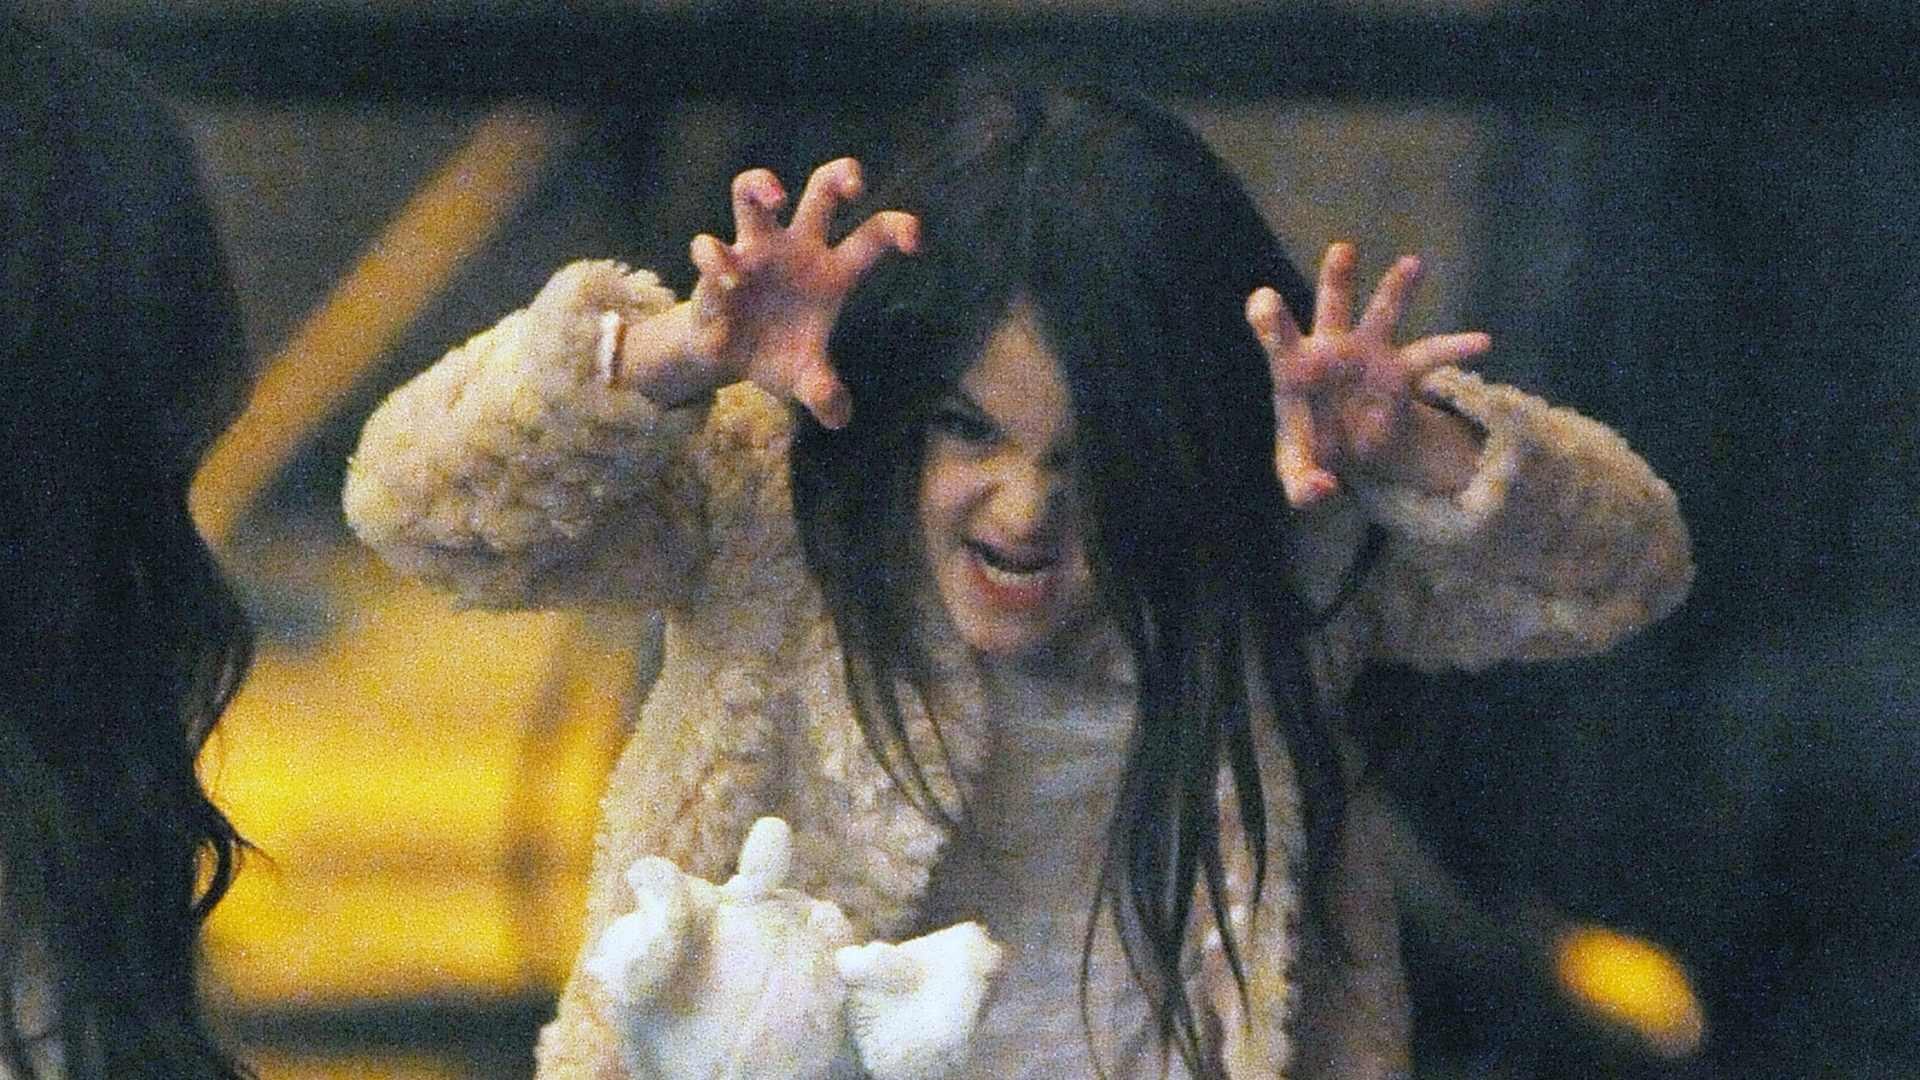 No colo da me, Suri Cruise faz caretas e 